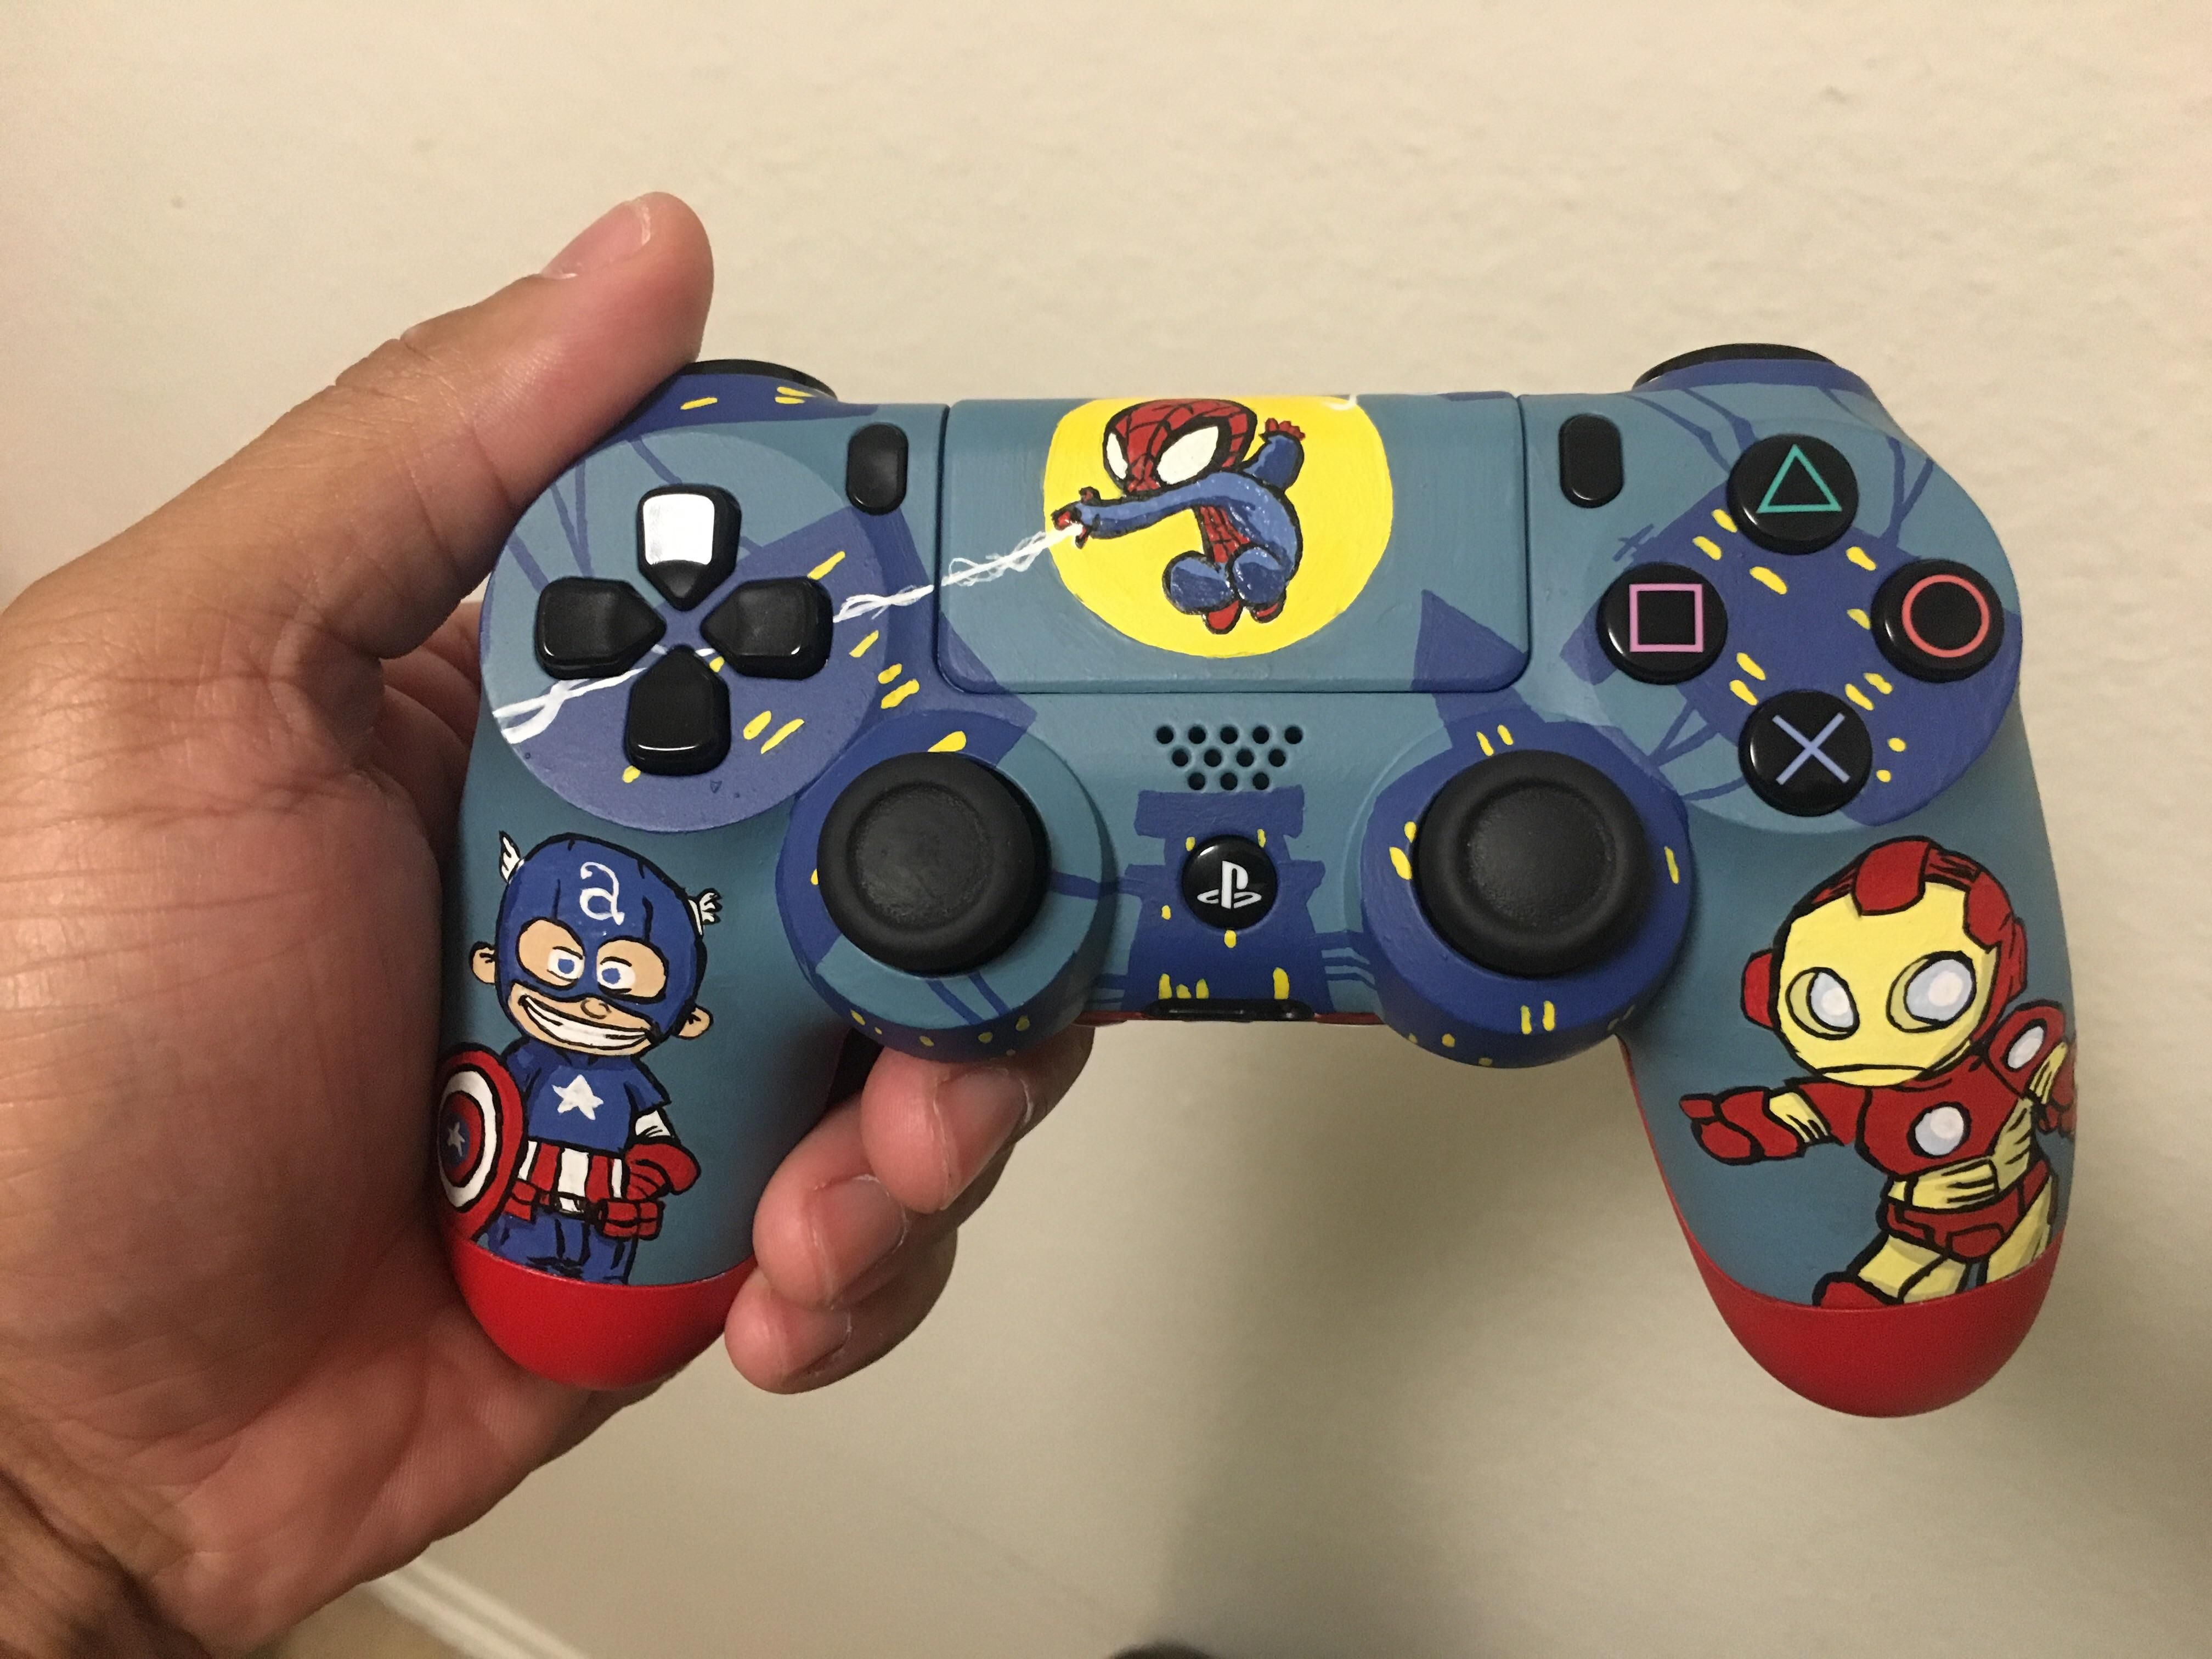 Hand Painted Ps4 Controller For My 4 Year Old Son For Xmas Screenshot Playstation4 Ps4 Sony Videogames Playstati Ps4 Controller Ps4 Cool Ps4 Controllers